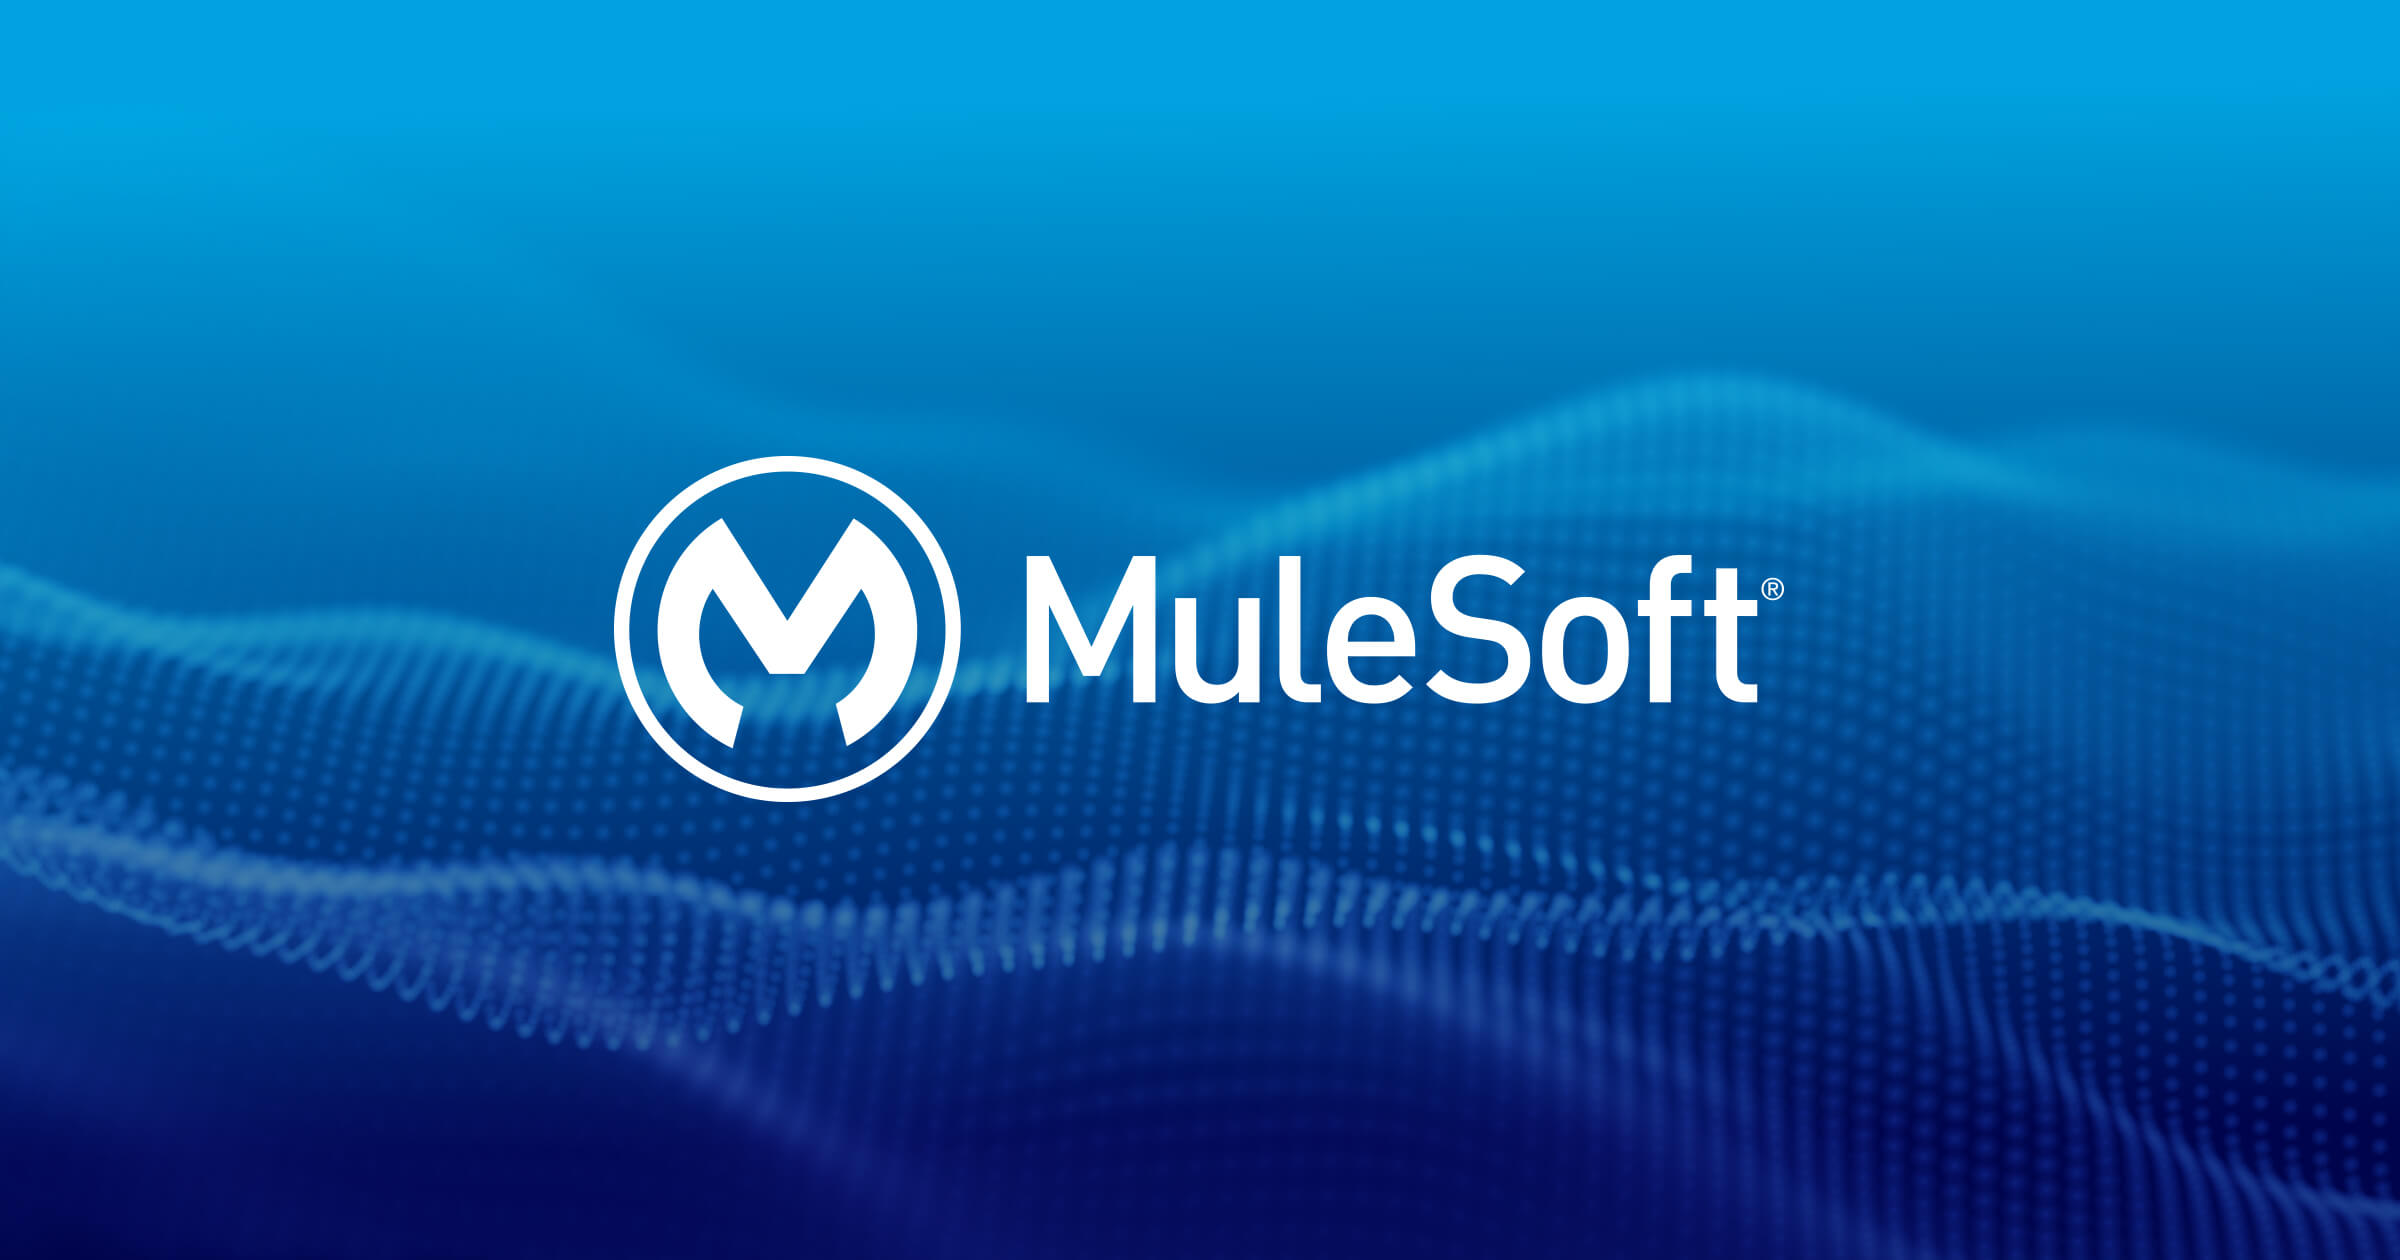 https://www.mulesoft.com/sites/default/files/cmm_files/mulesoft-og_0.jpg